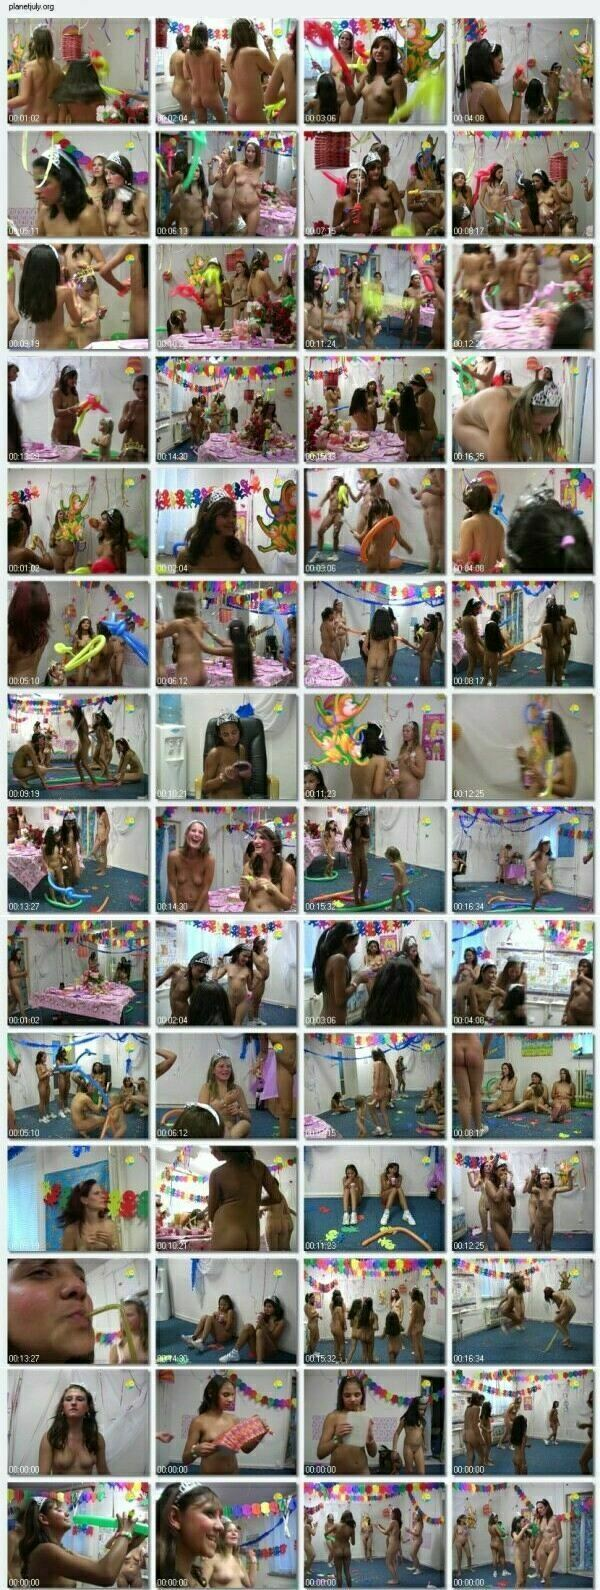 Nudist Family Video - Princess